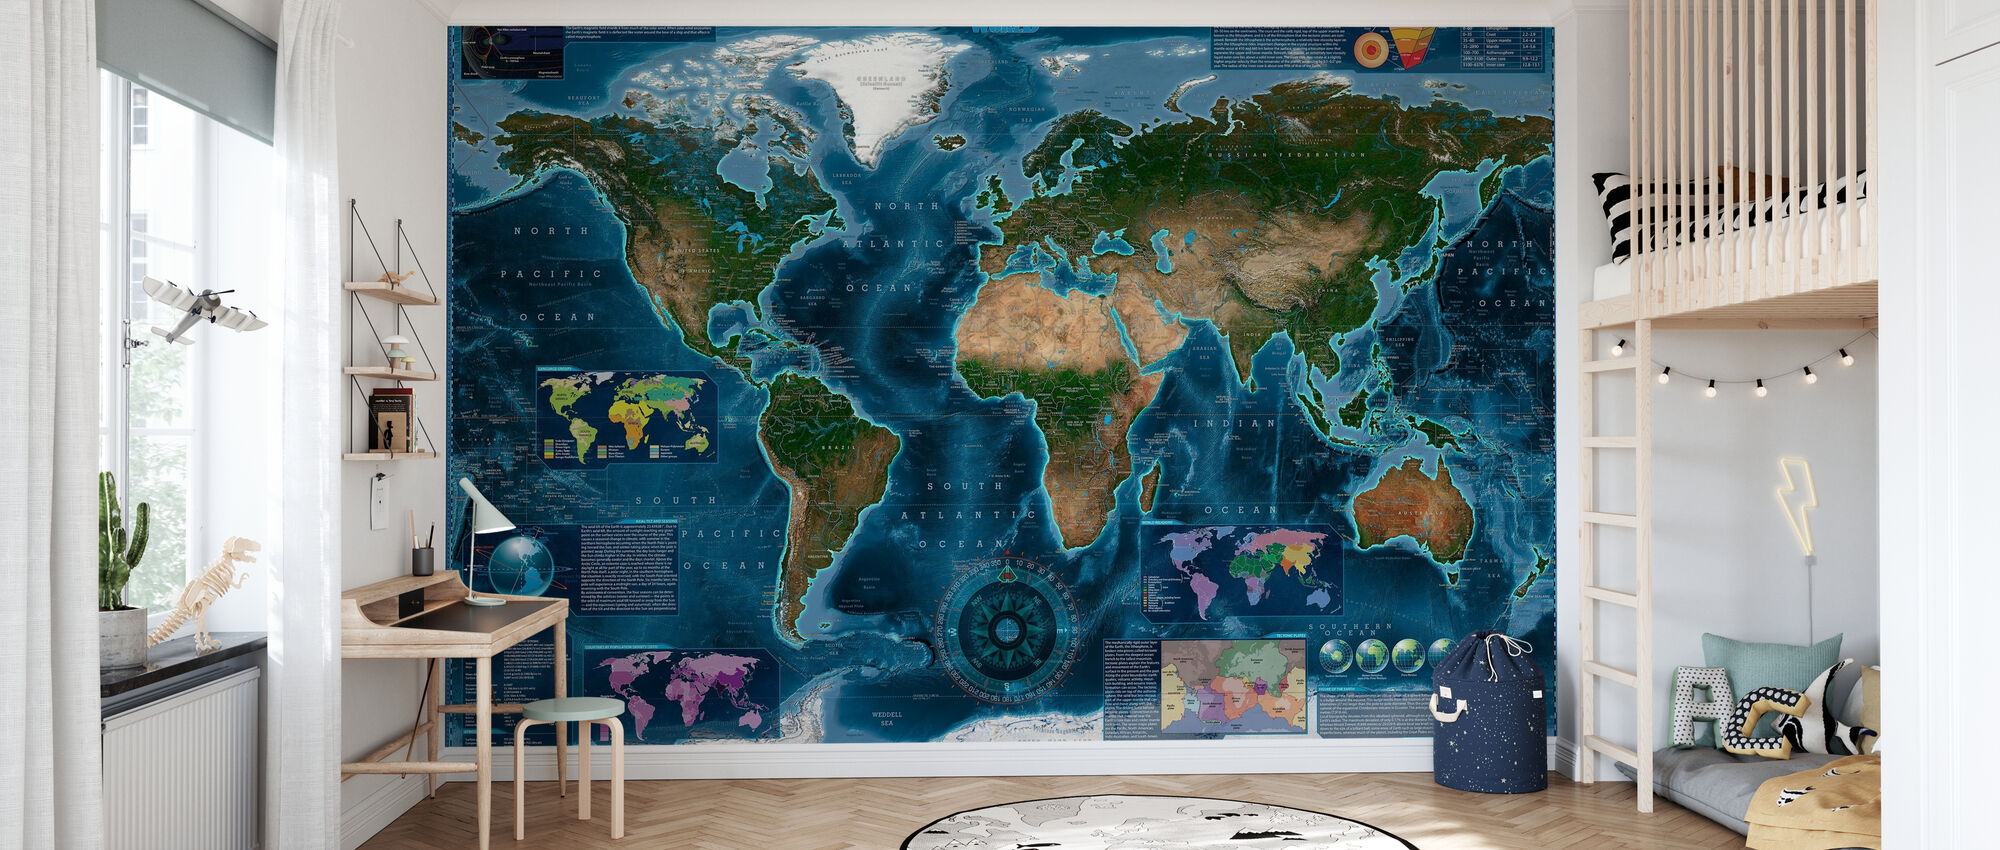 Satelite Map Infographic - Wallpaper - Kids Room